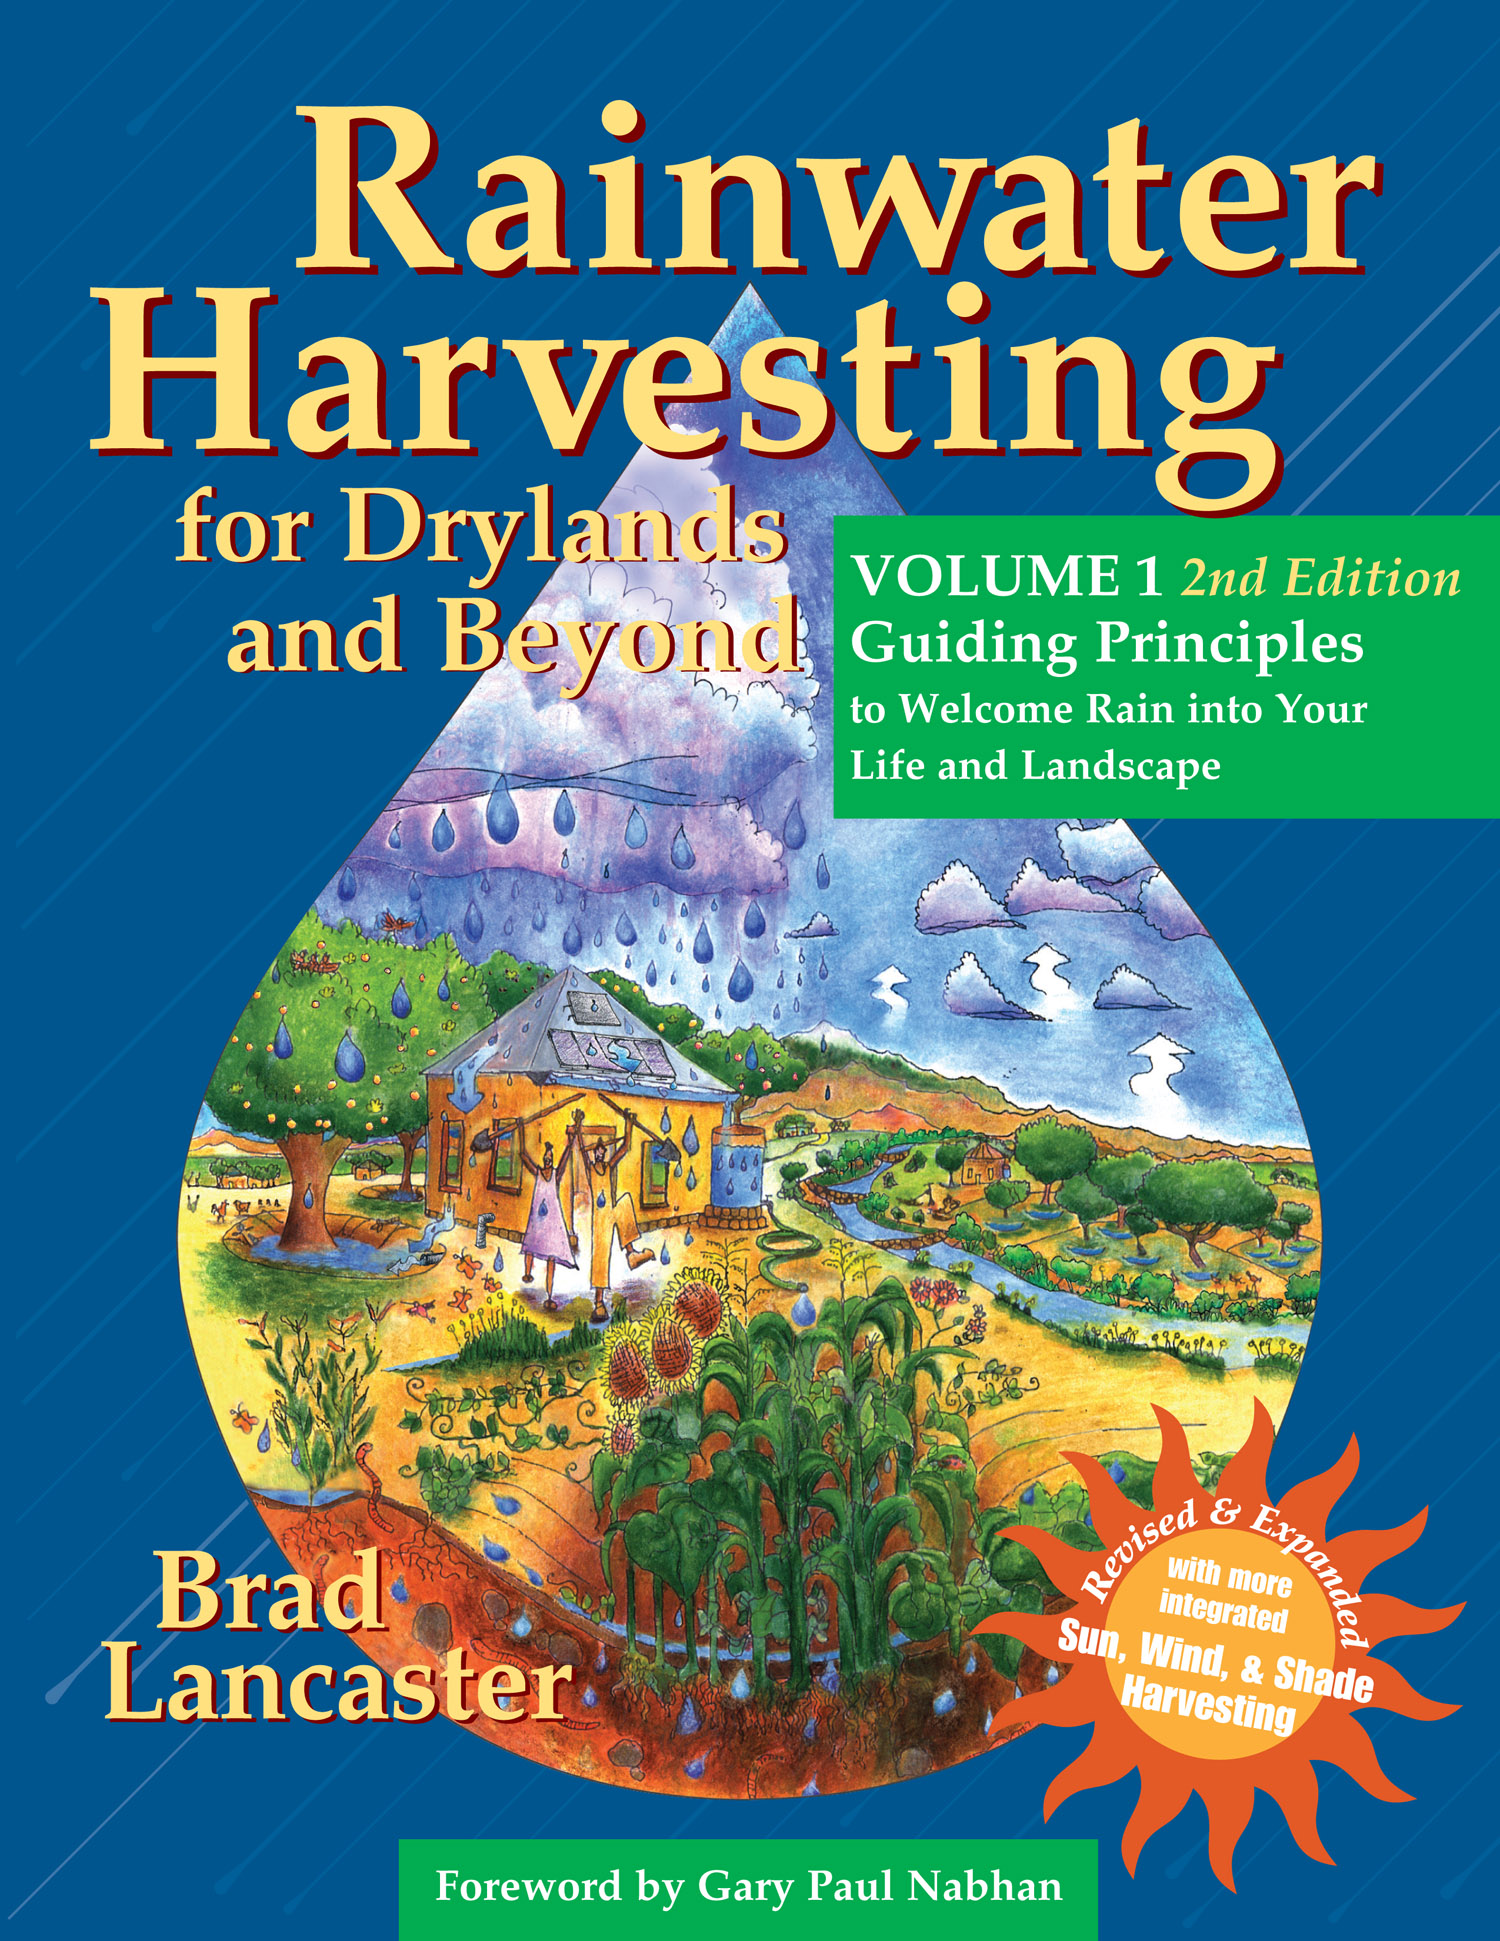 Rainwater harvesting for drylands and beyond by brad lancaster selected content including appendix 6 resources altavistaventures Gallery